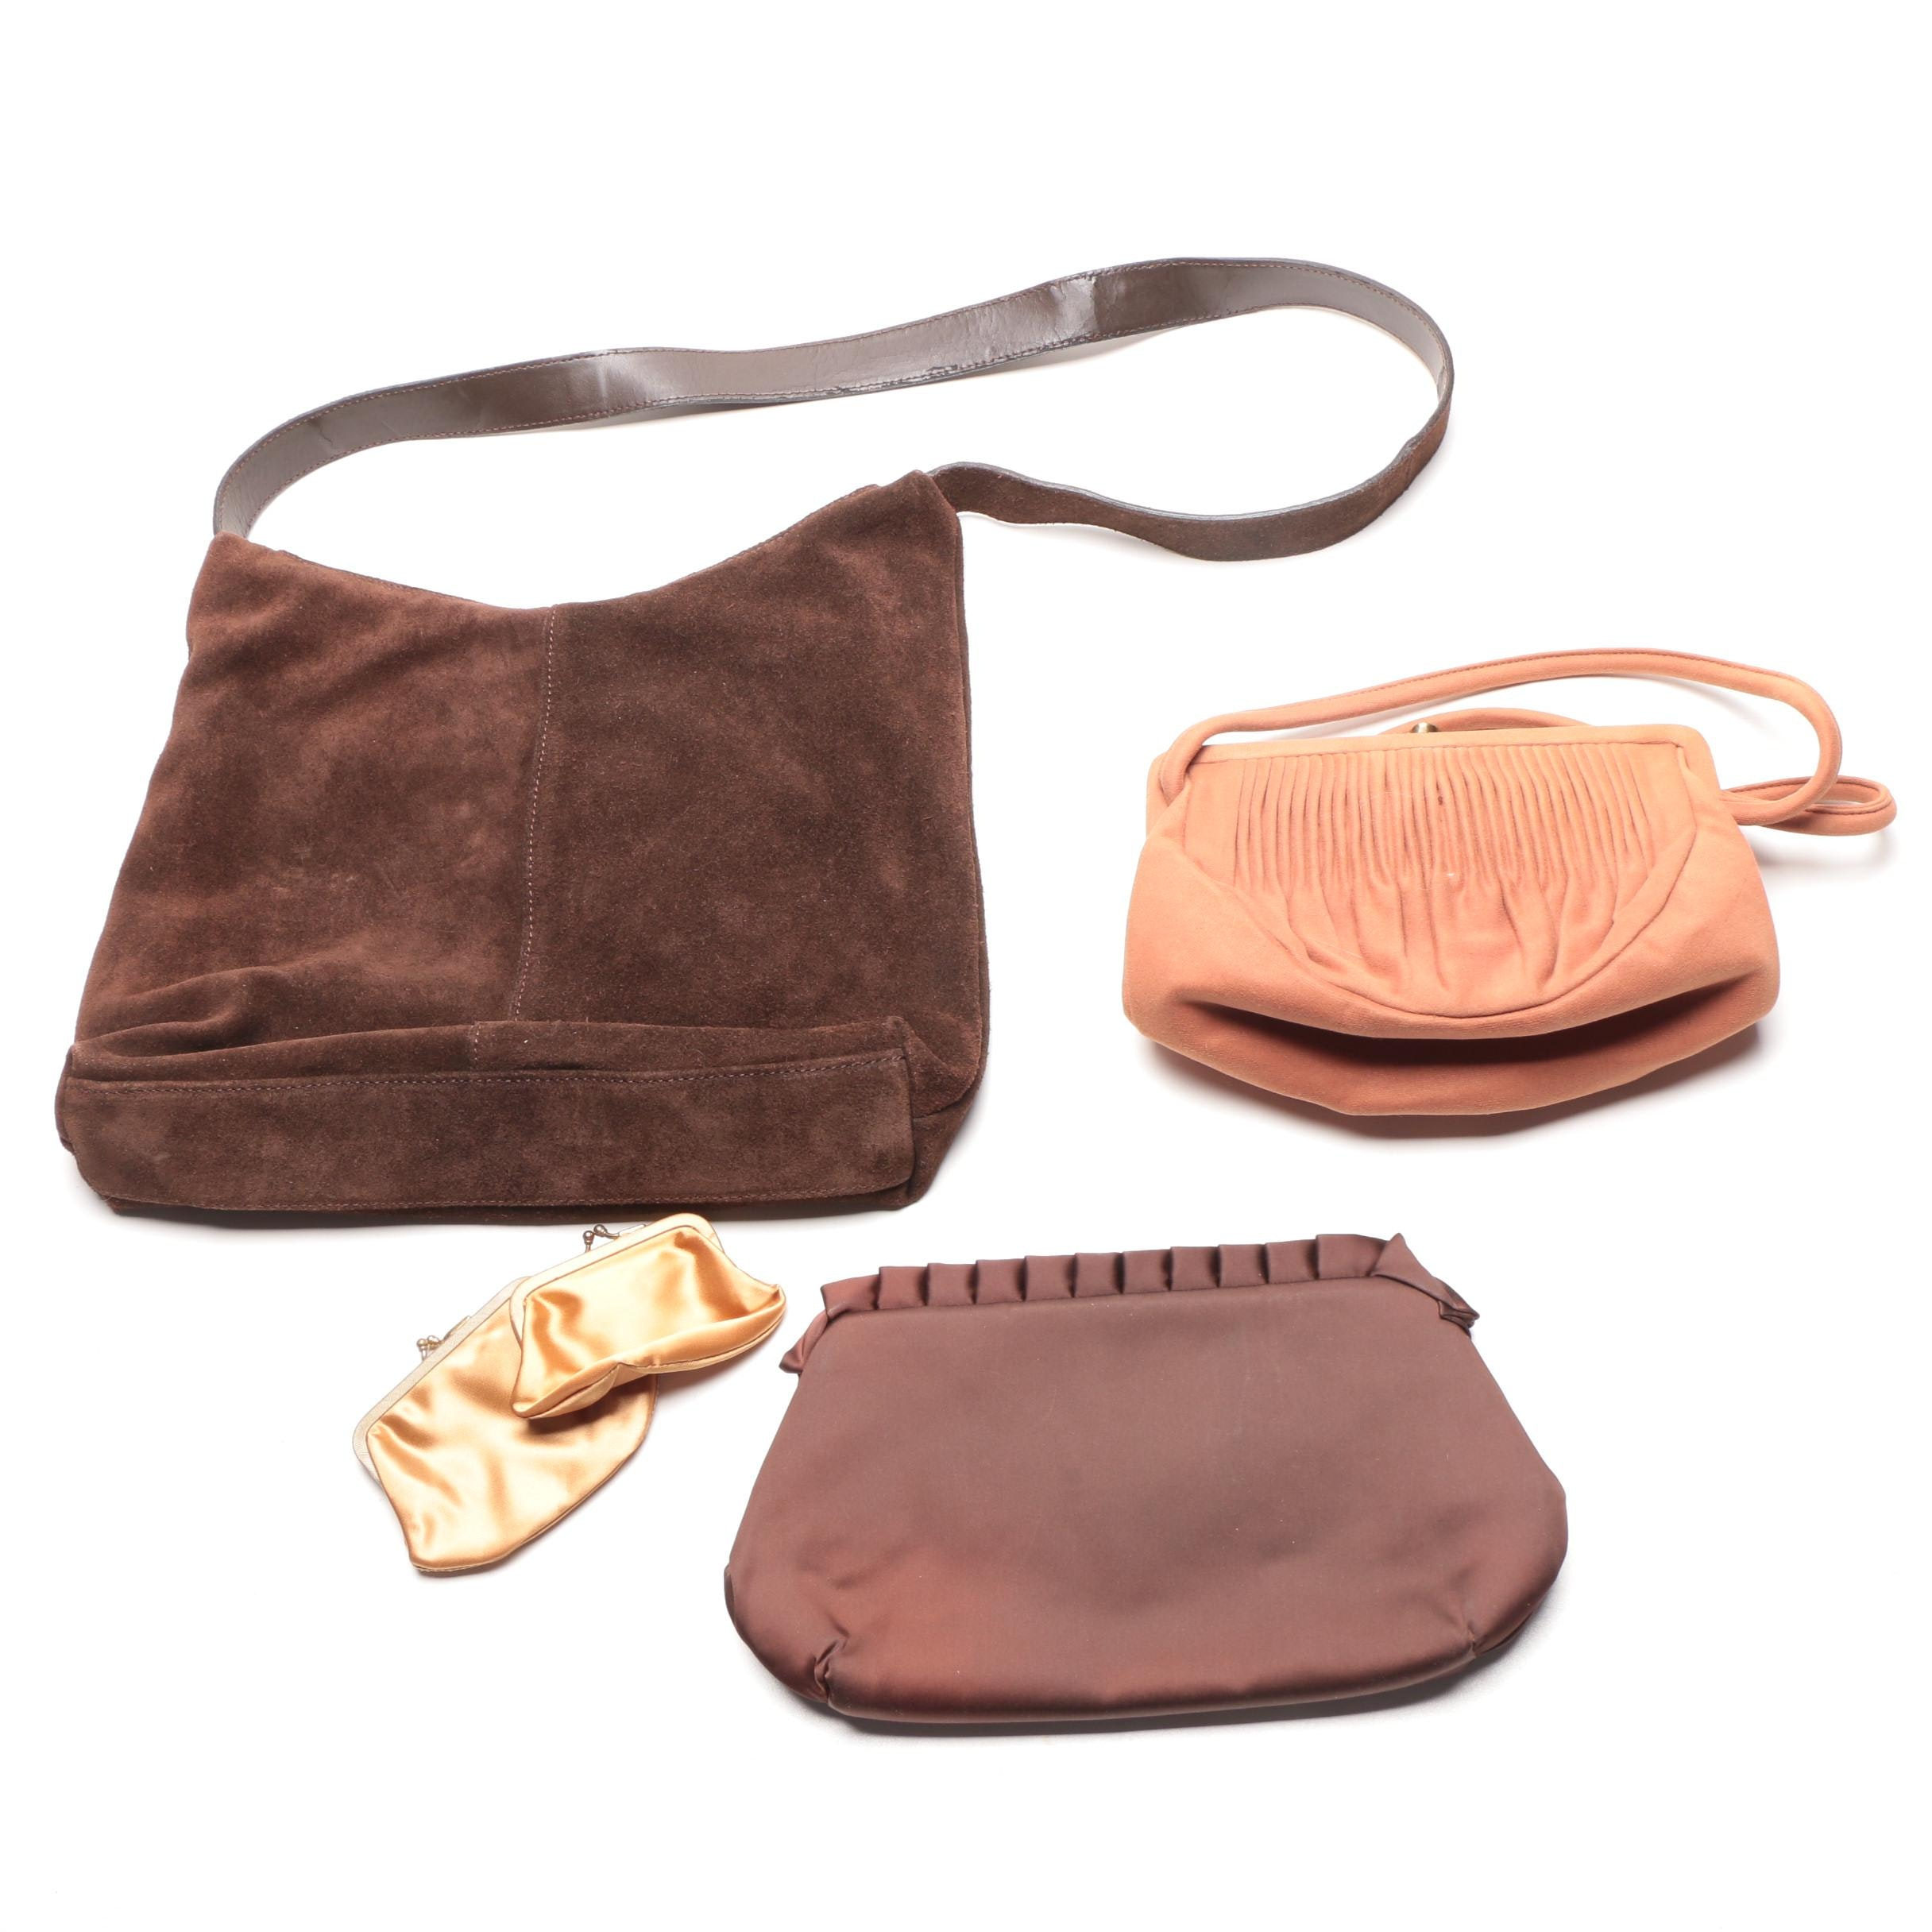 Assortment of Handbags Including Split Calfskin Leather Bag